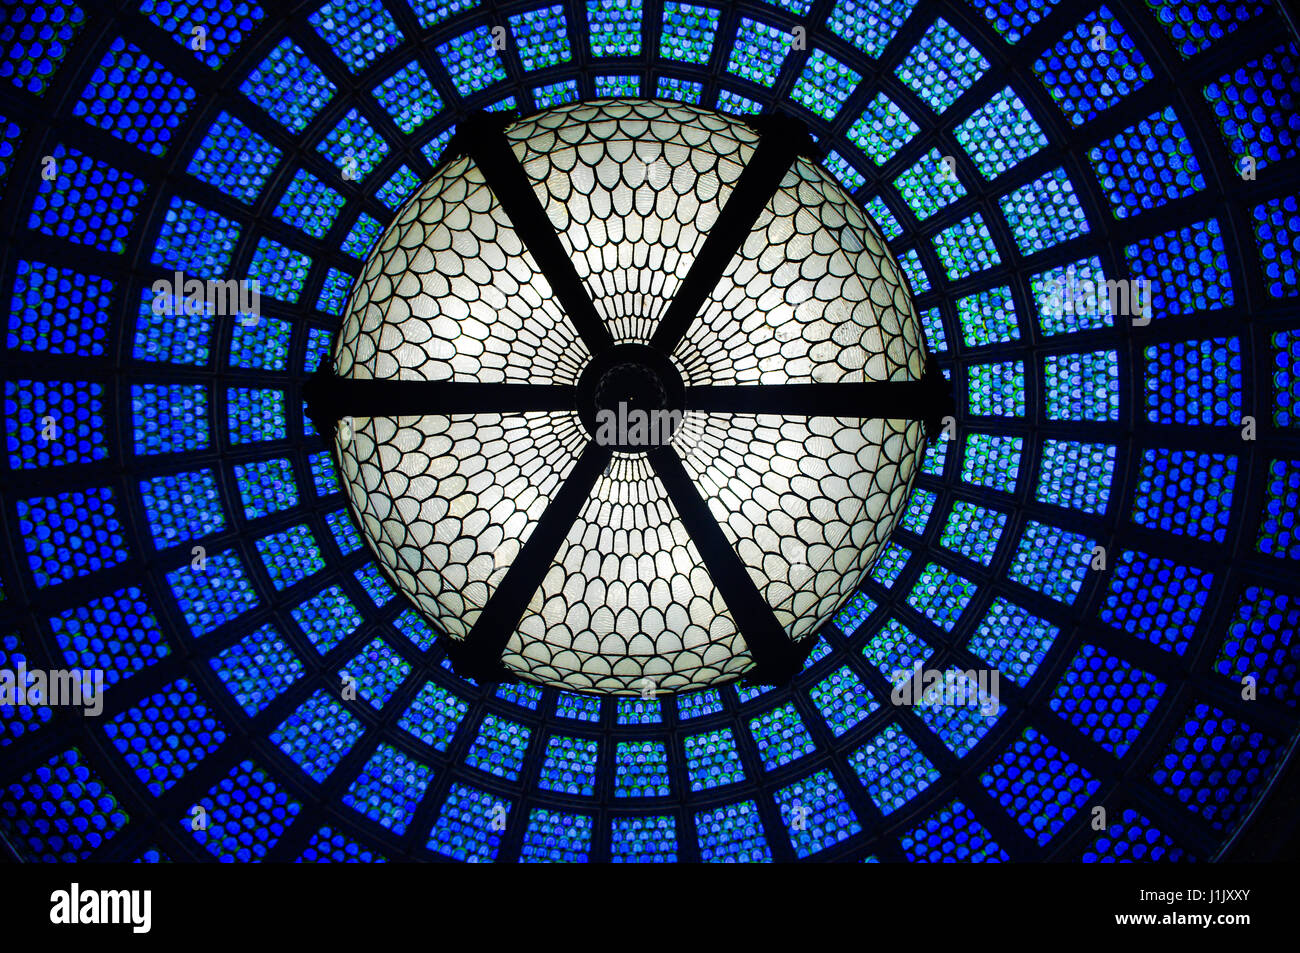 glass-dome-glass-ceiling-in-the-cultural